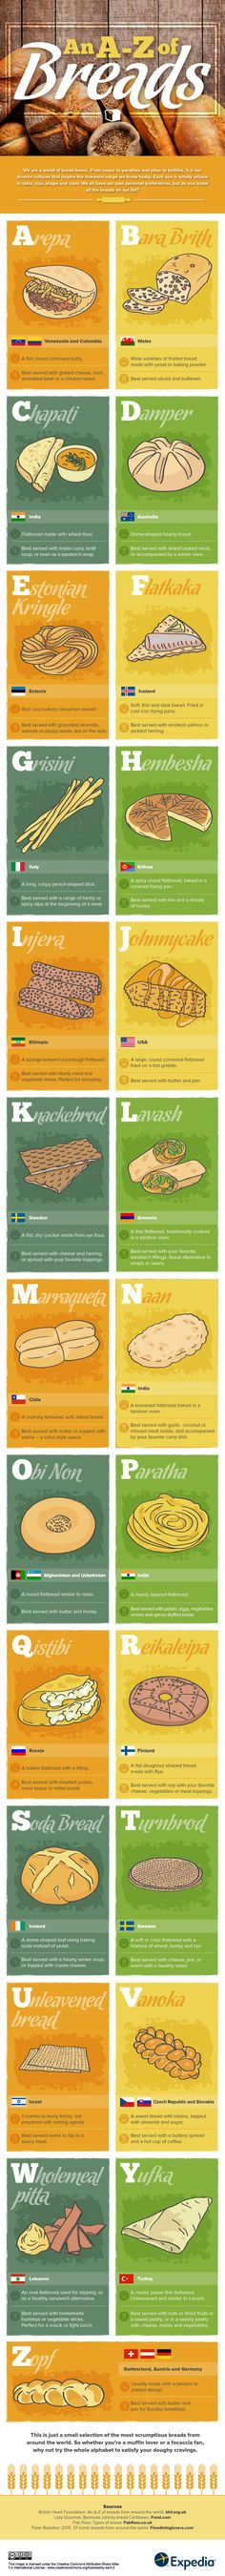 illustrated alphabet featuring breads from every corner of the globe. You'll find everything from Indian naan and Colombian arepas to Ethiopian injera and Russian qistibi.    Let's take a look at some of the tasty breads on the list: